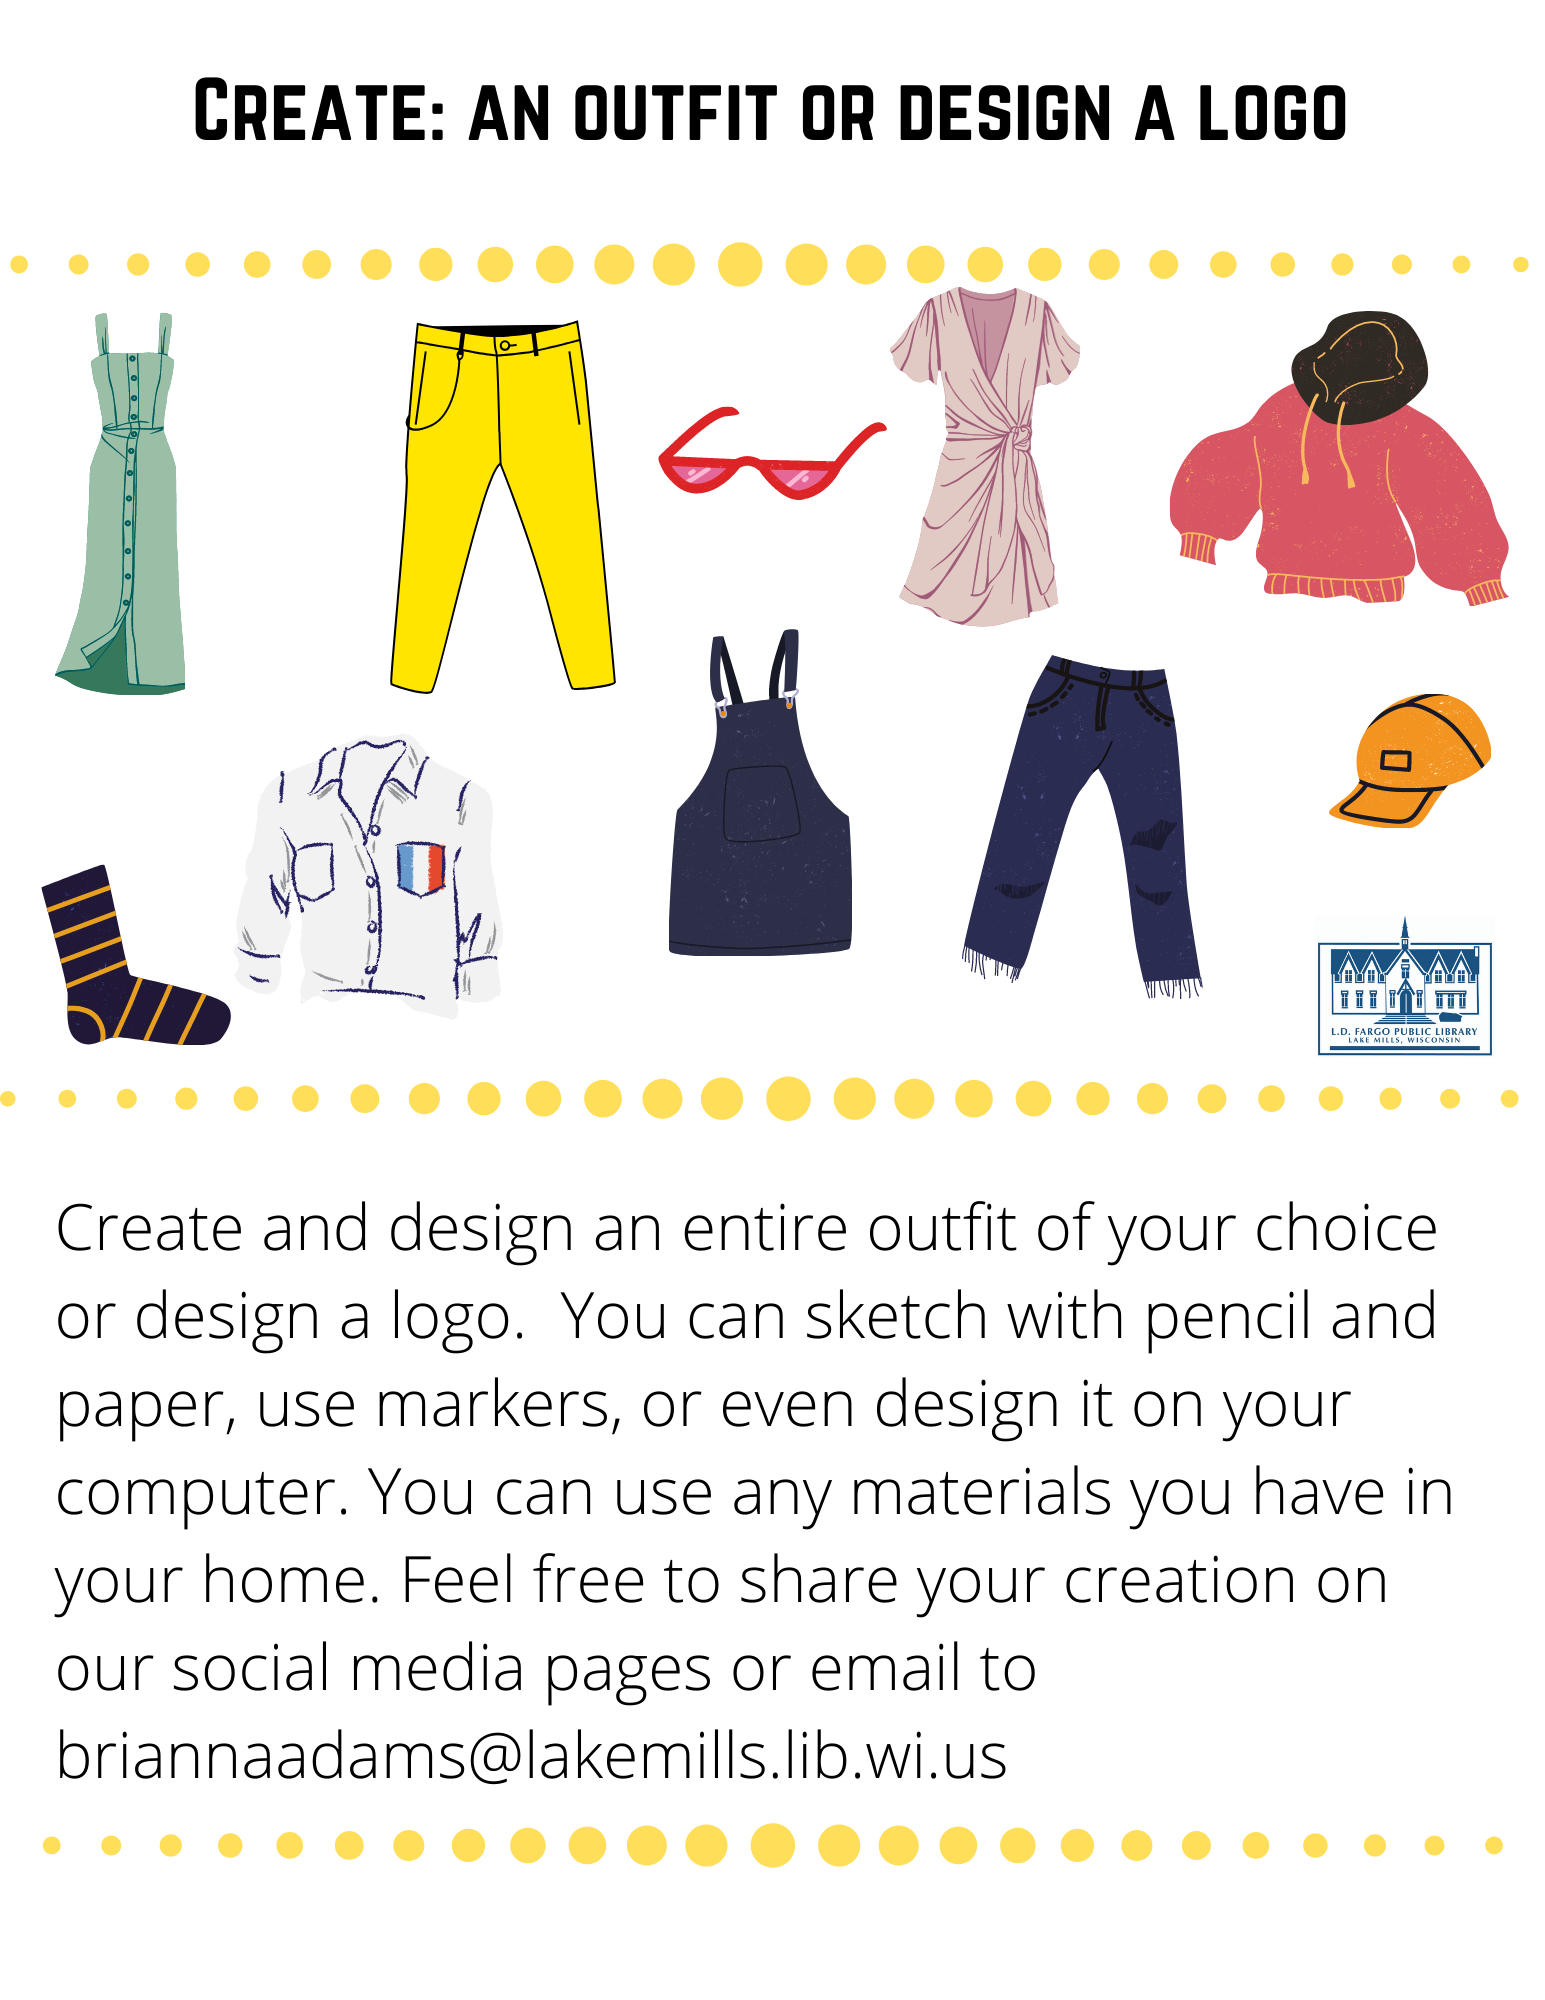 Create: an outfit or design a logo  Create and design an entire outfit of your choice or design a logo.  You can sketch with pencil and paper, use markers, or even design it on your computer. You can use any materials you have in your home. Feel free to share your creation on our social media pages or email to briannaadams@lakemills.lib.wi.us